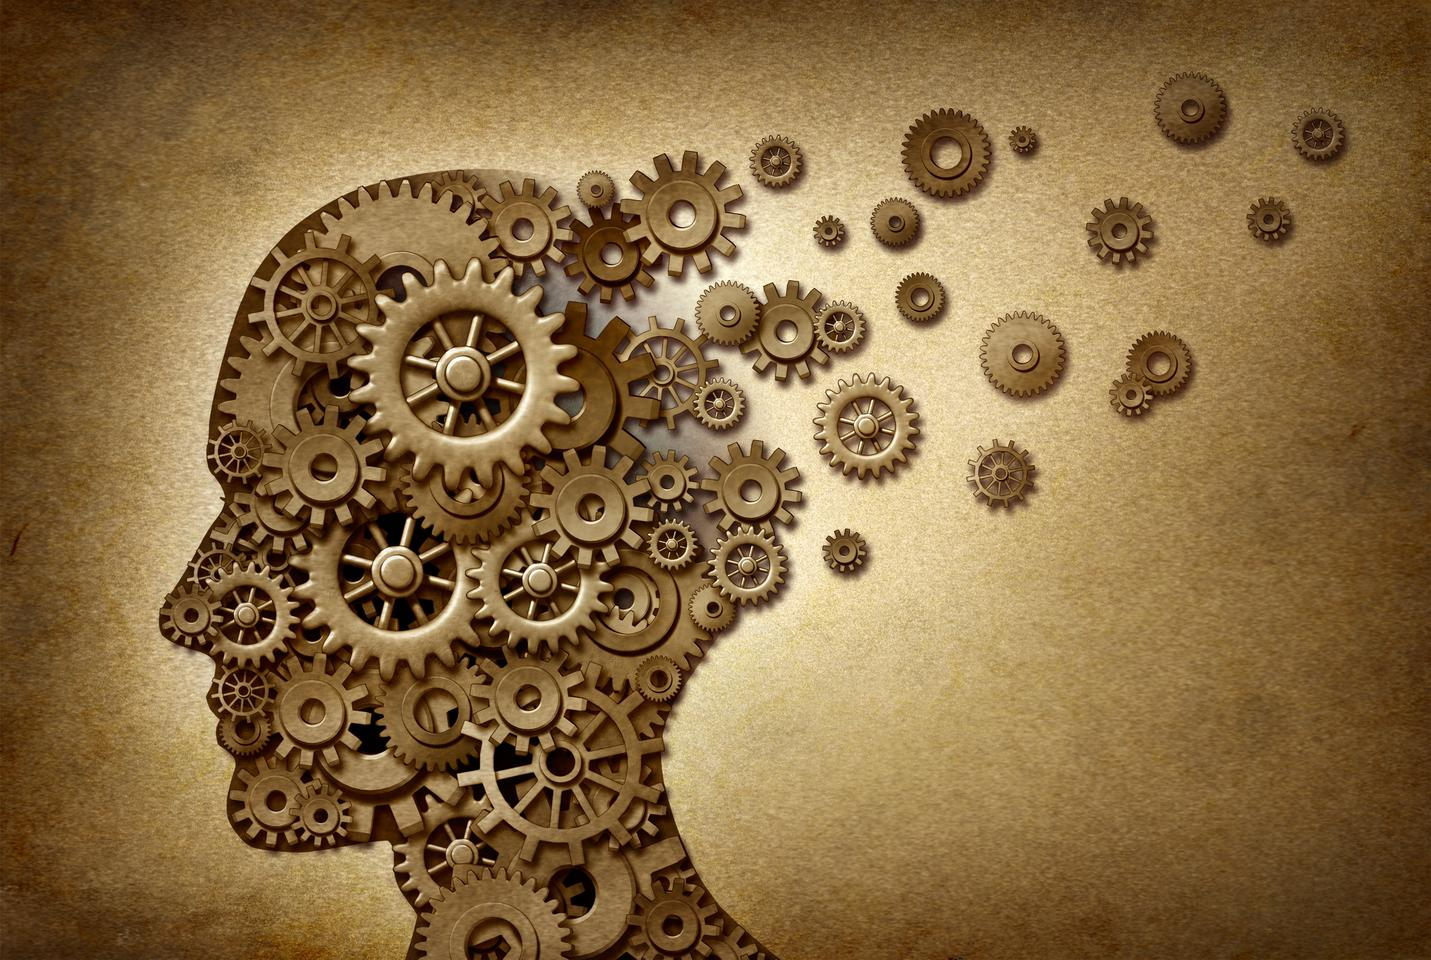 New hope could be on the way in the search for a treatment for Alzheimer's disease (Image: Shutterstock)